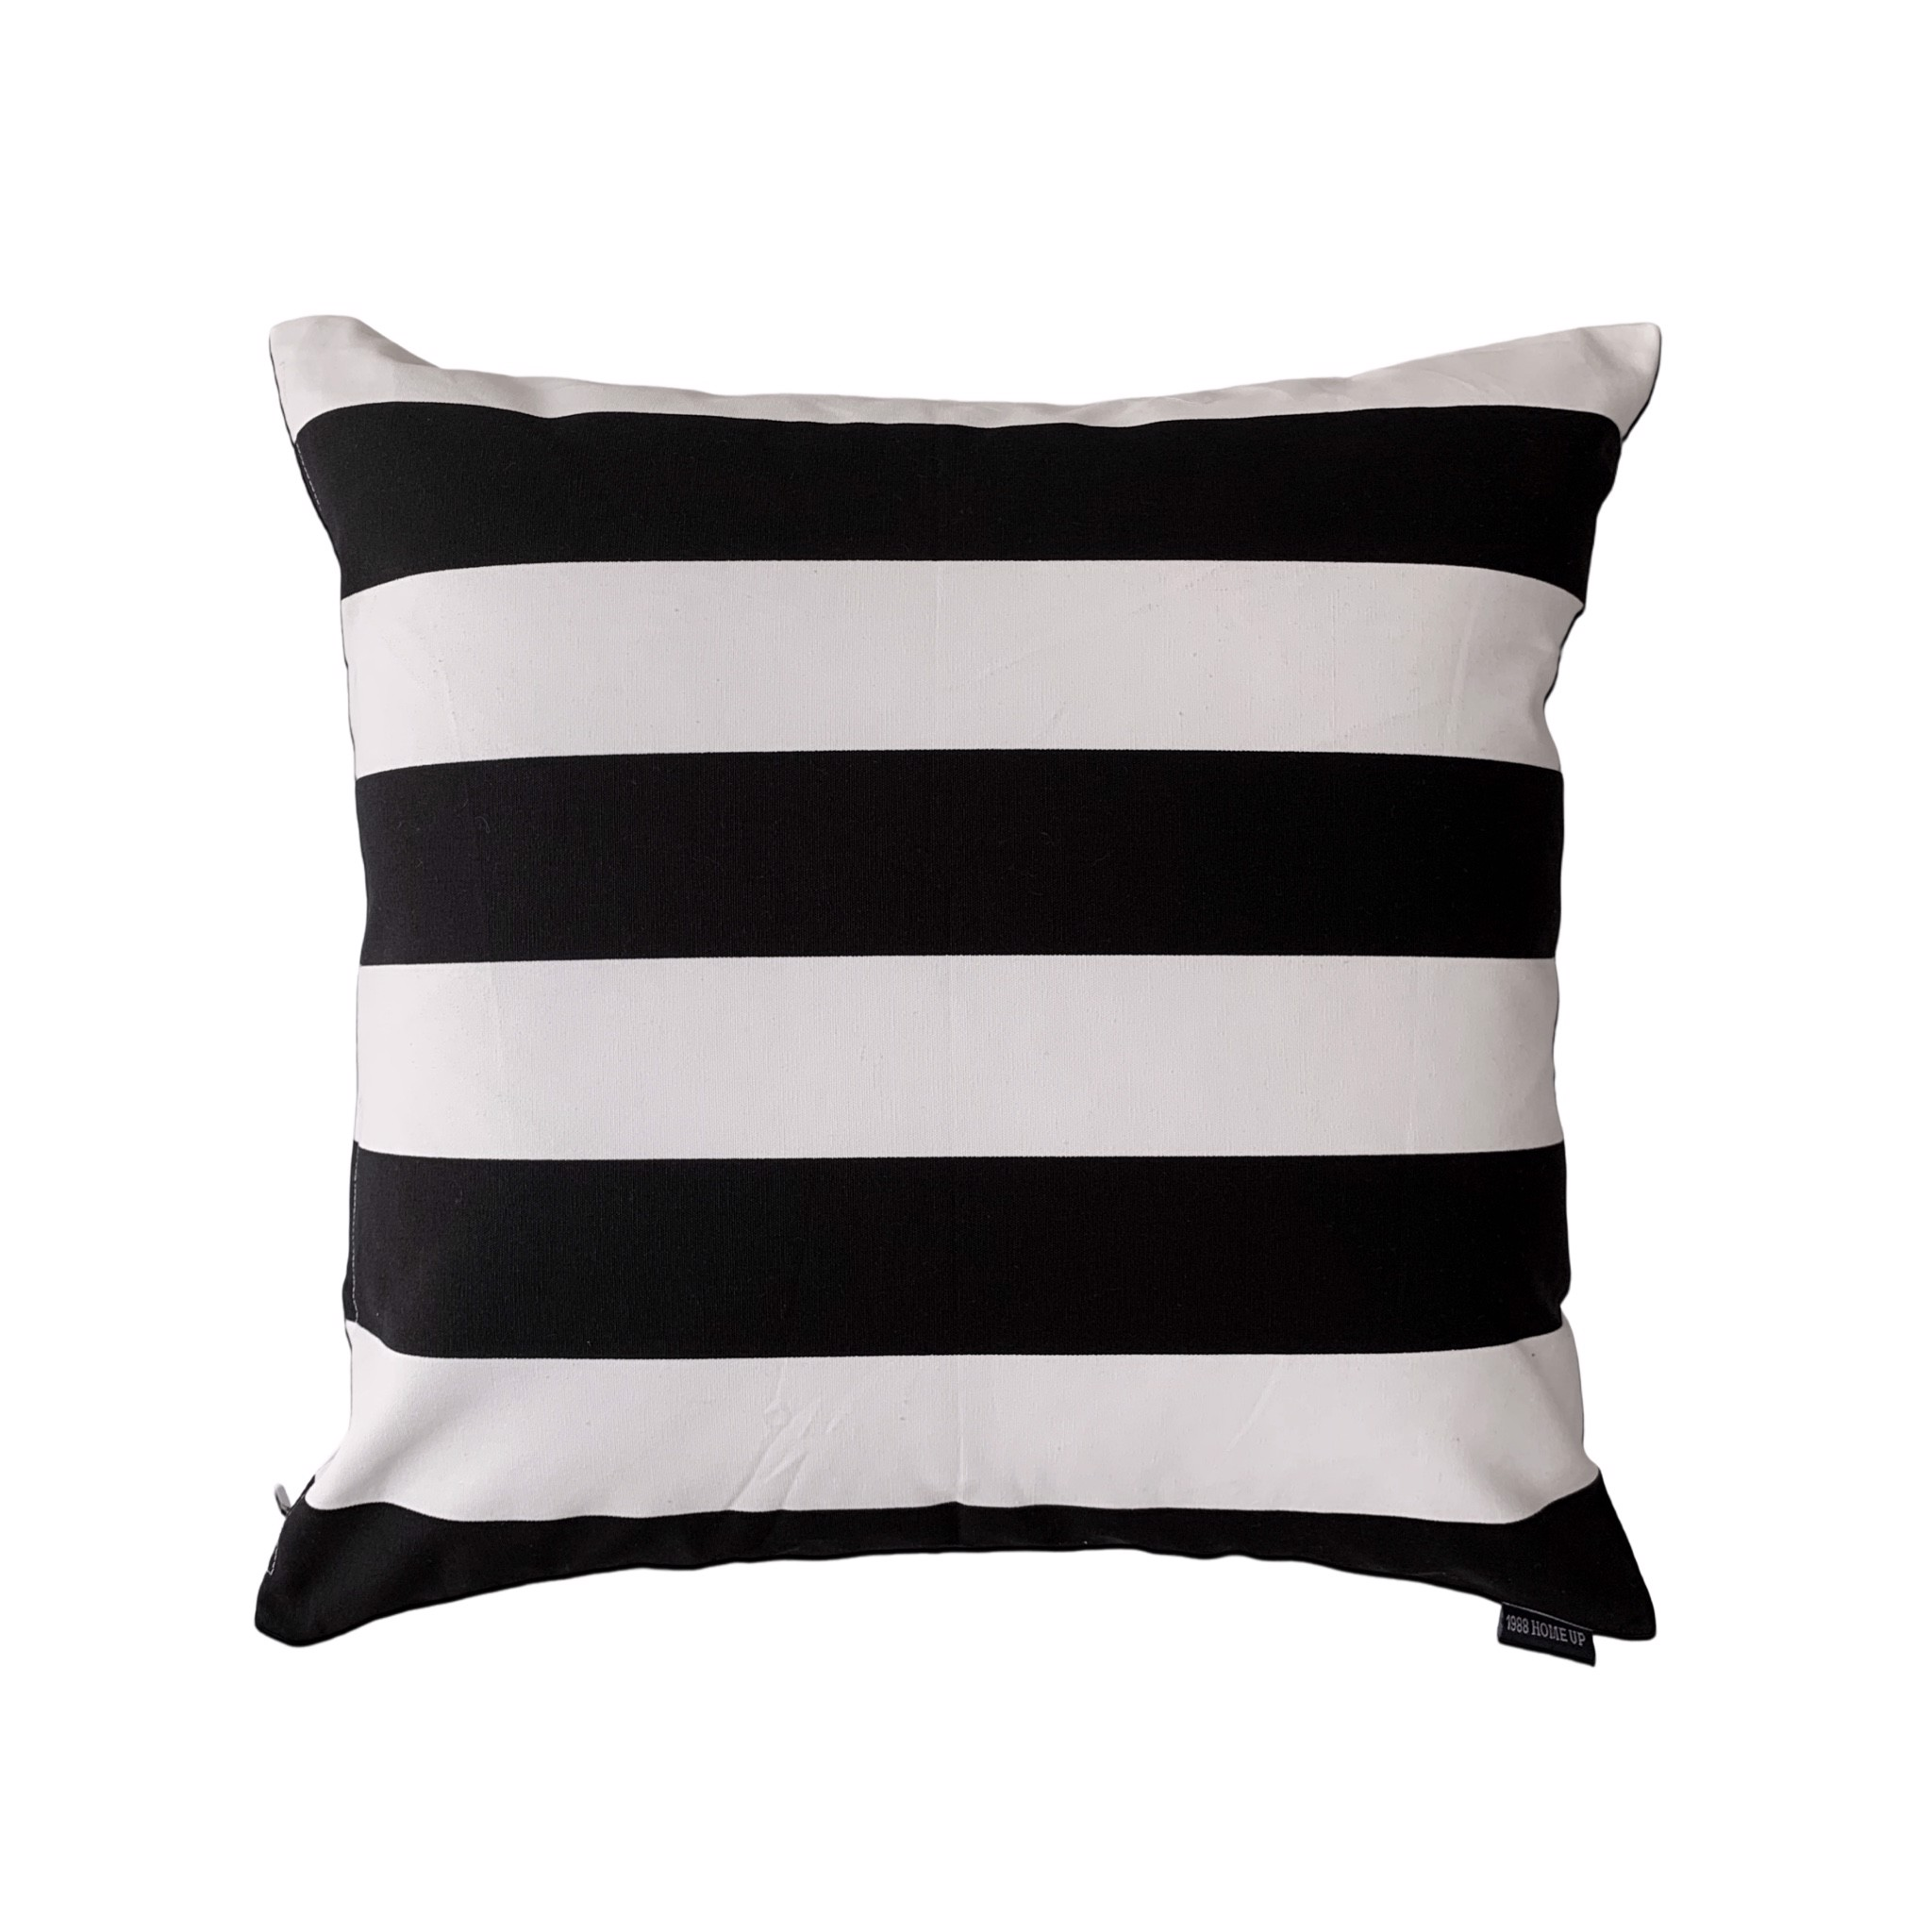 Cushion cover 86 Black striped